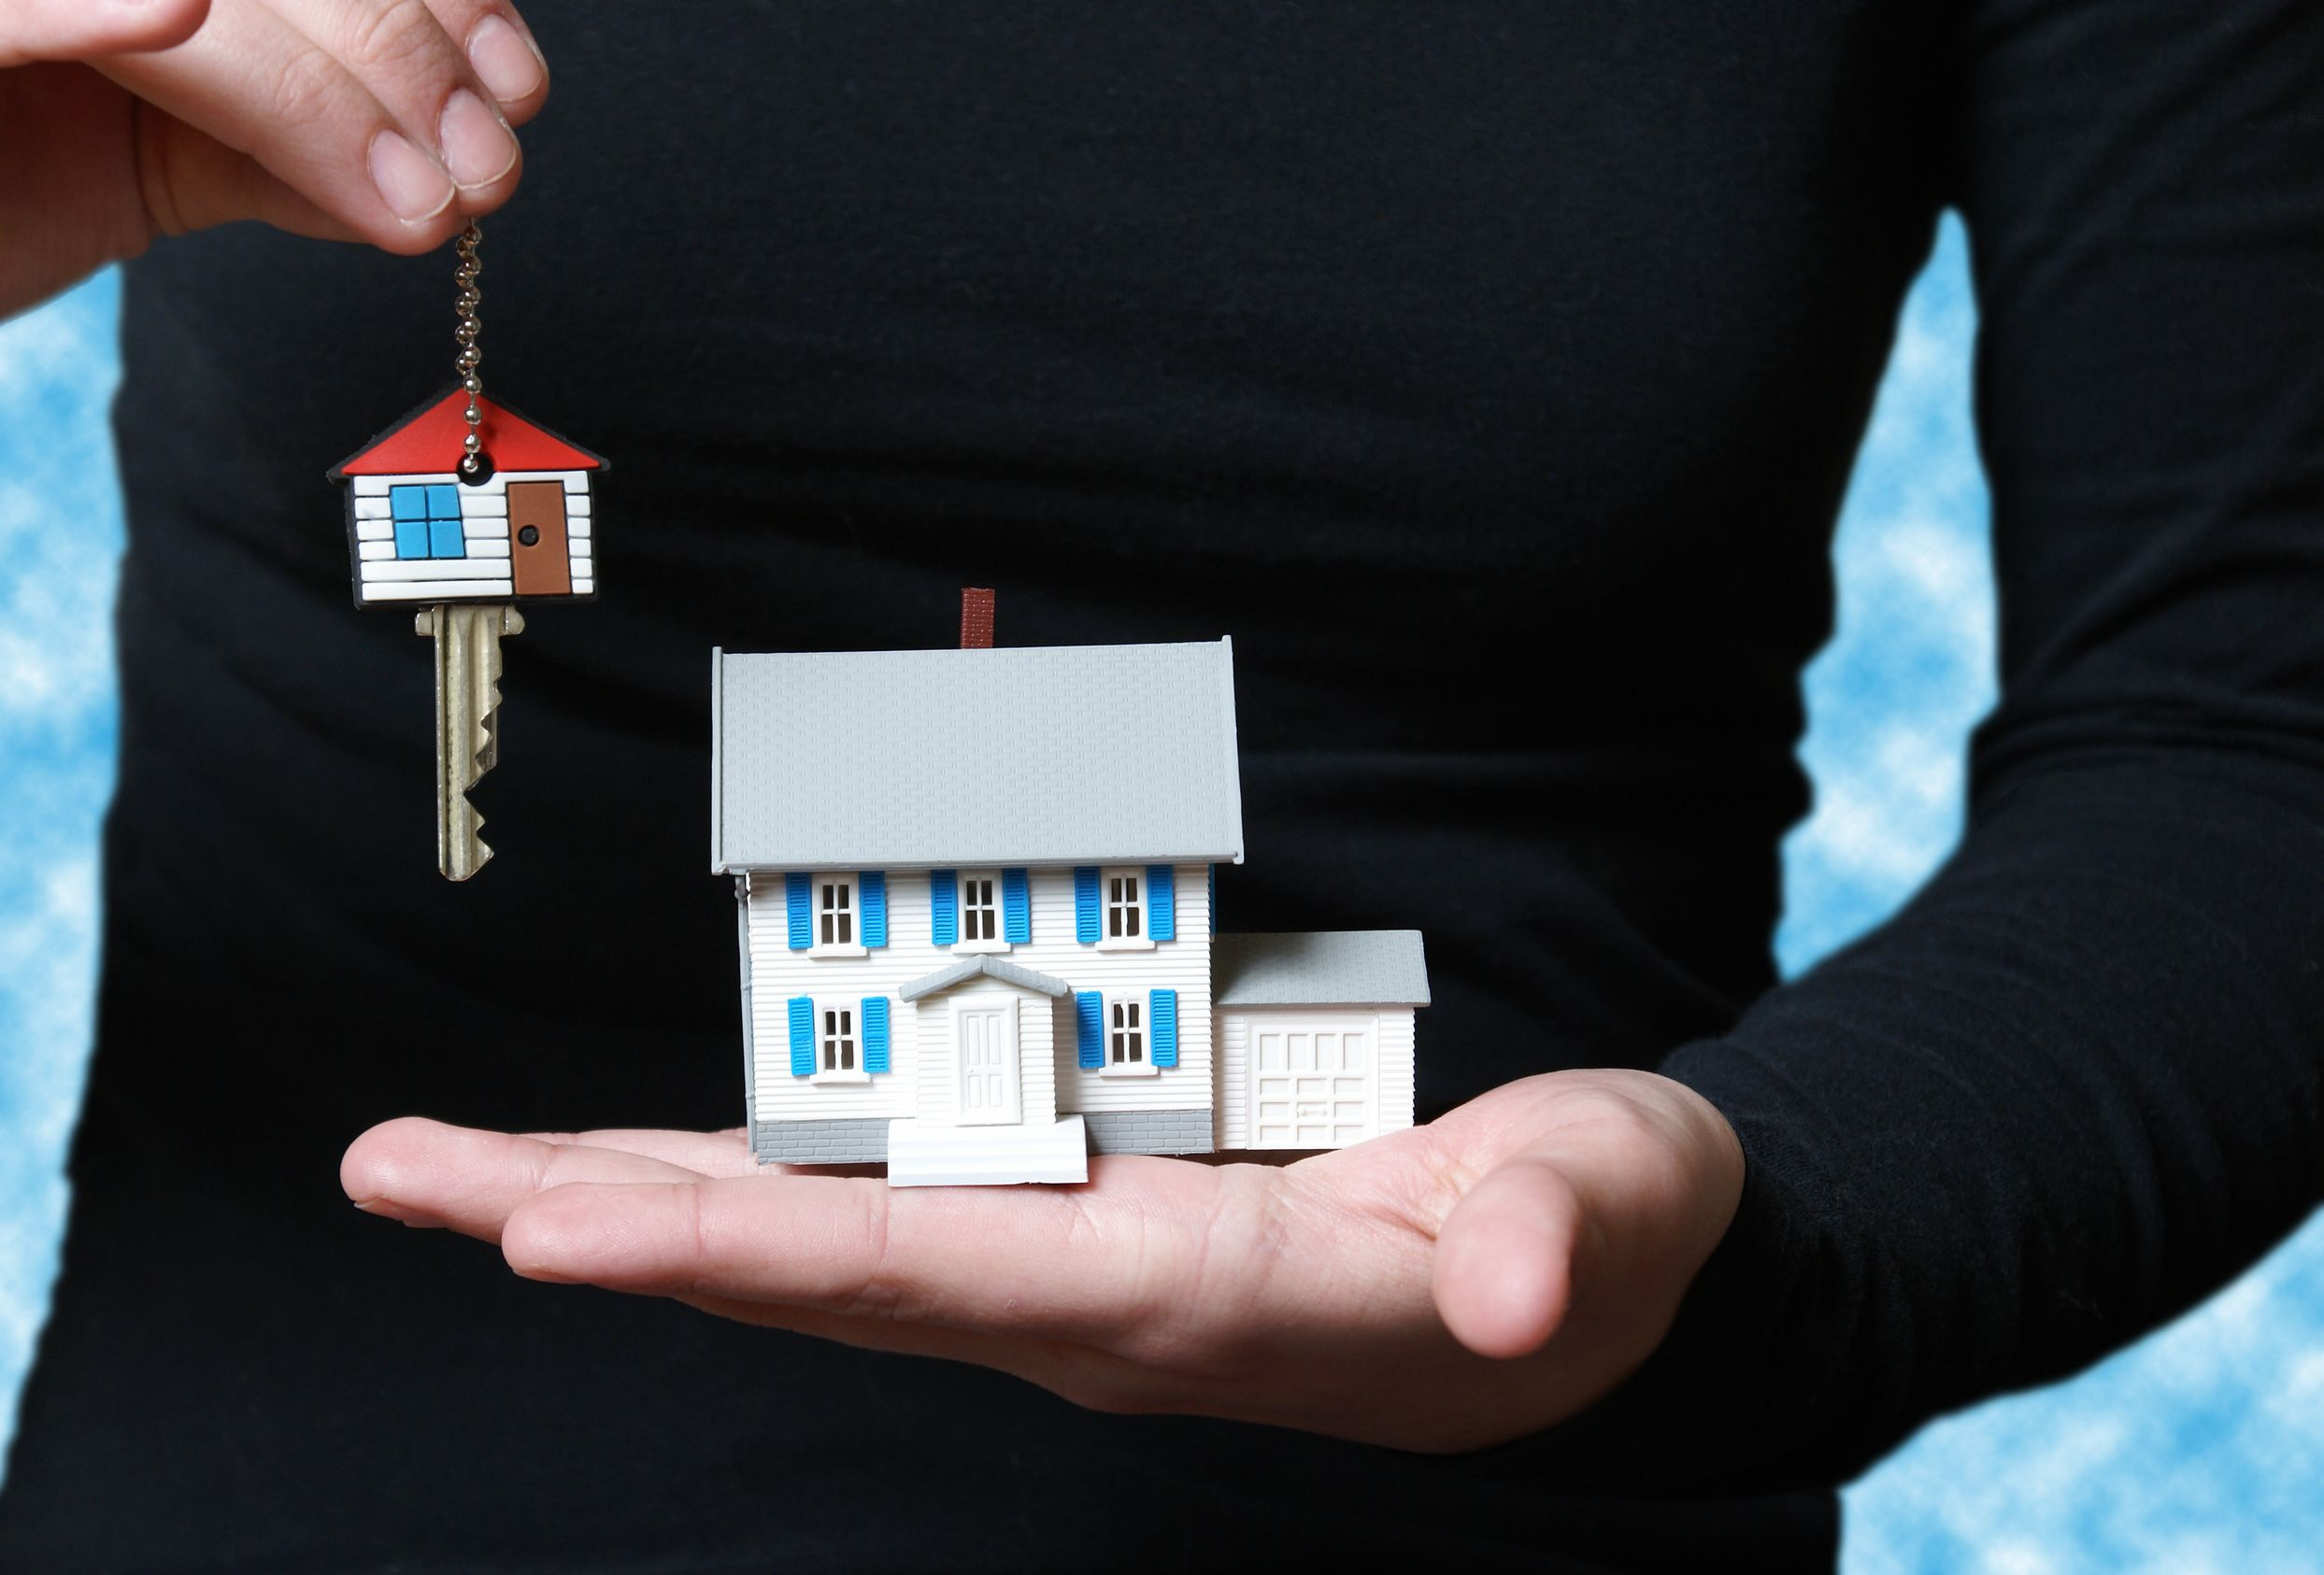 8958769 - a conceptual image of someone receiving their key to their new home.